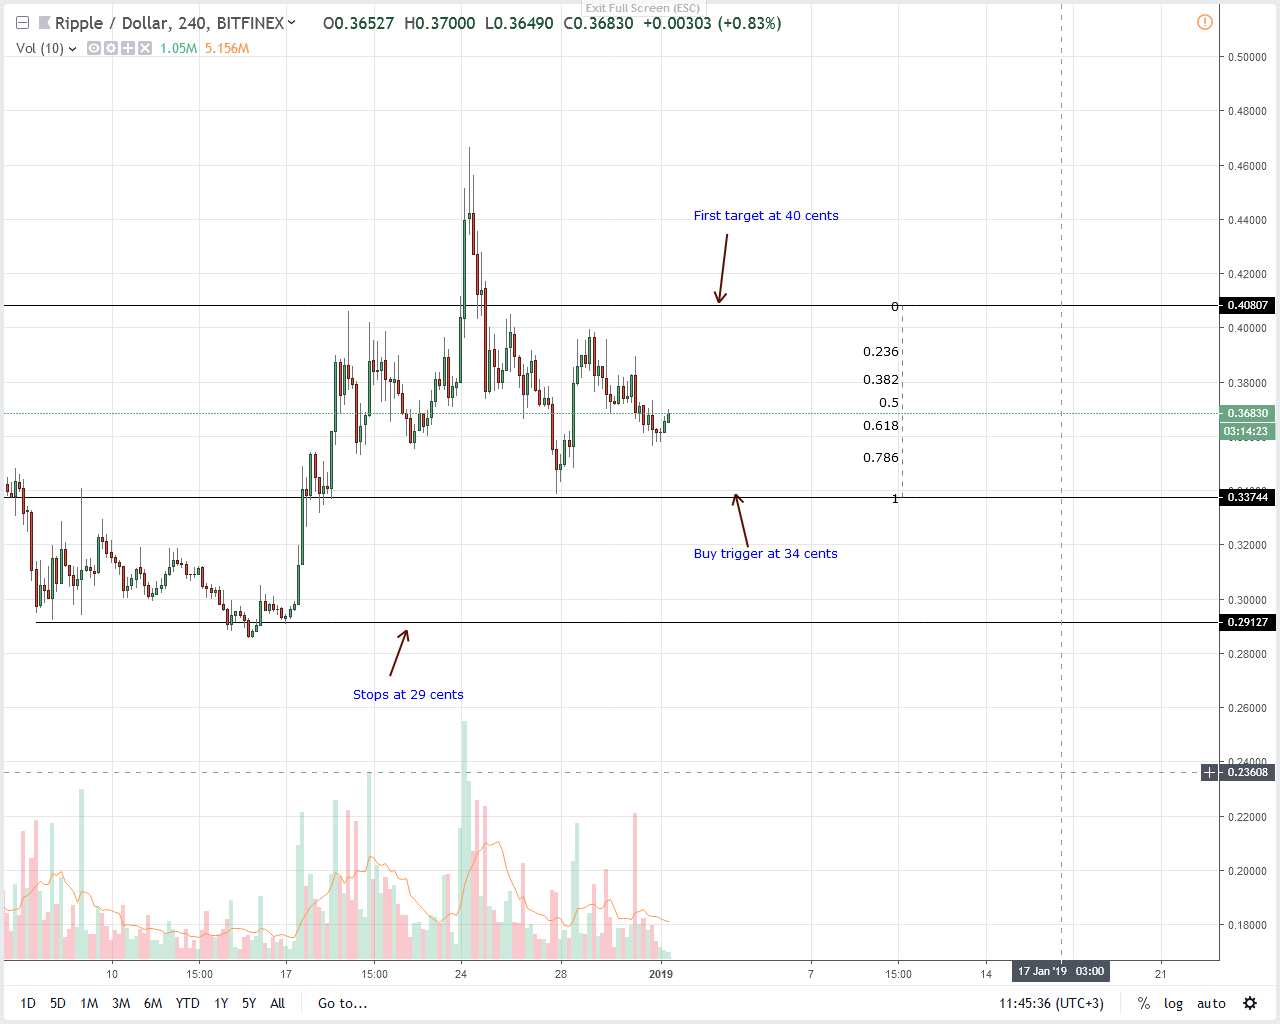 Ripple Price Analysis: XRP Set For 40 Cents, Ripple Founder Bullish